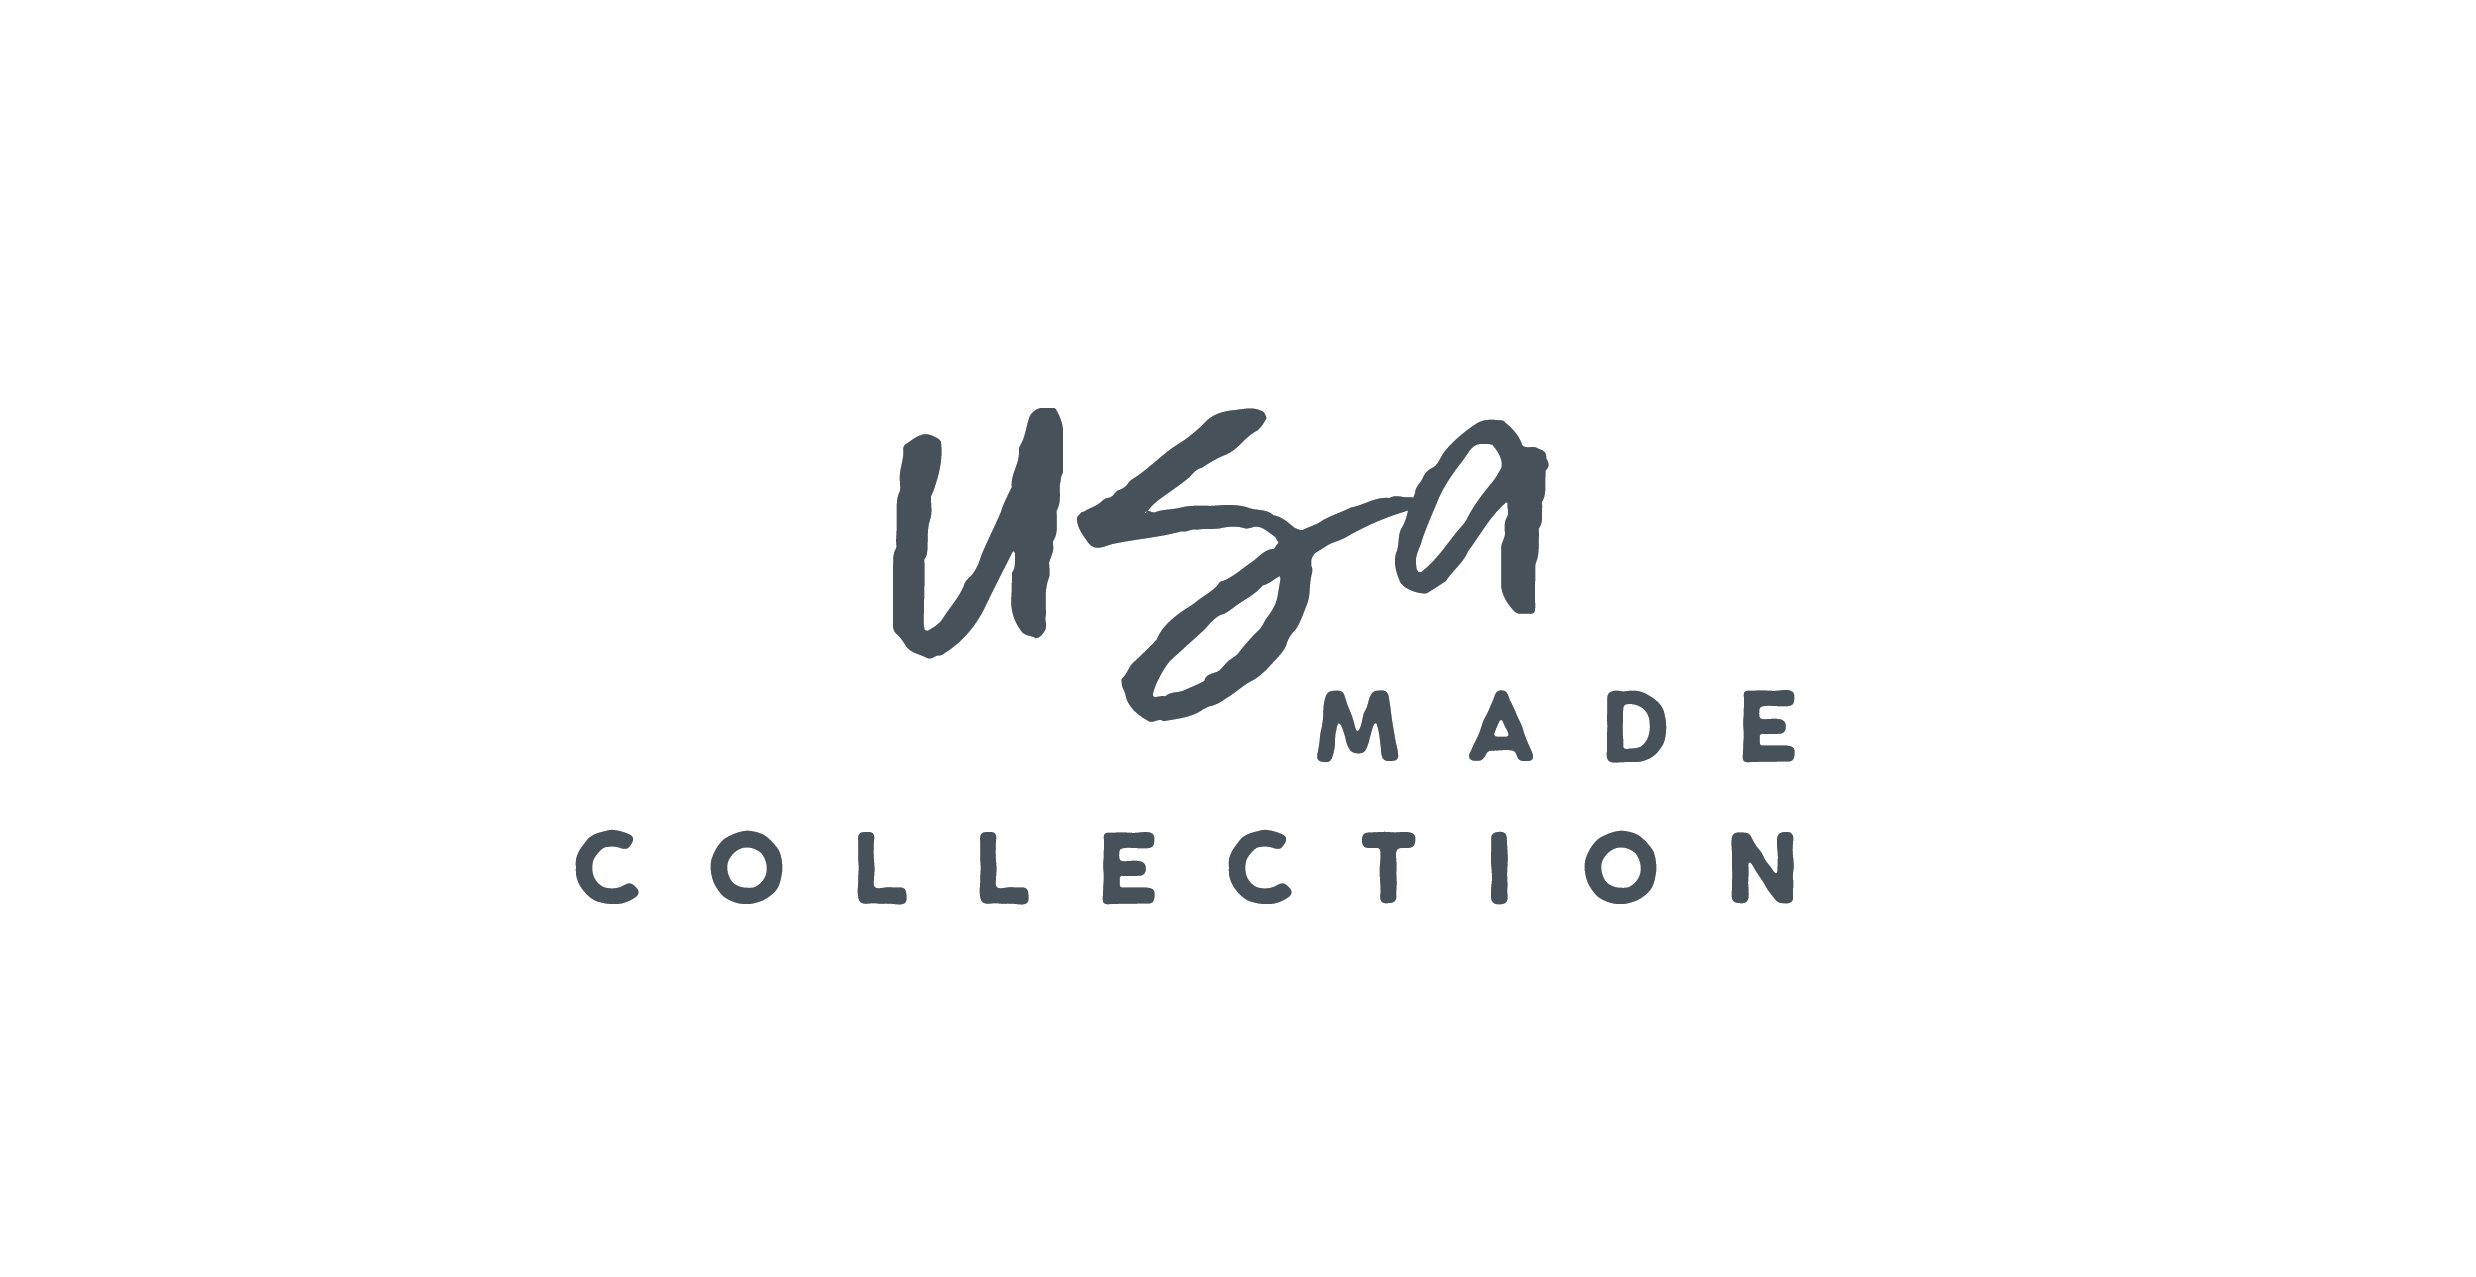 usa made collection 2.png